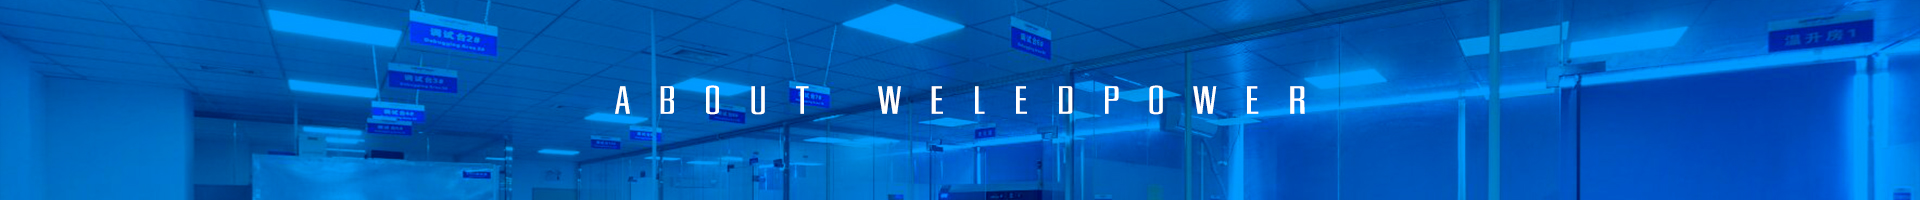 about weledpower